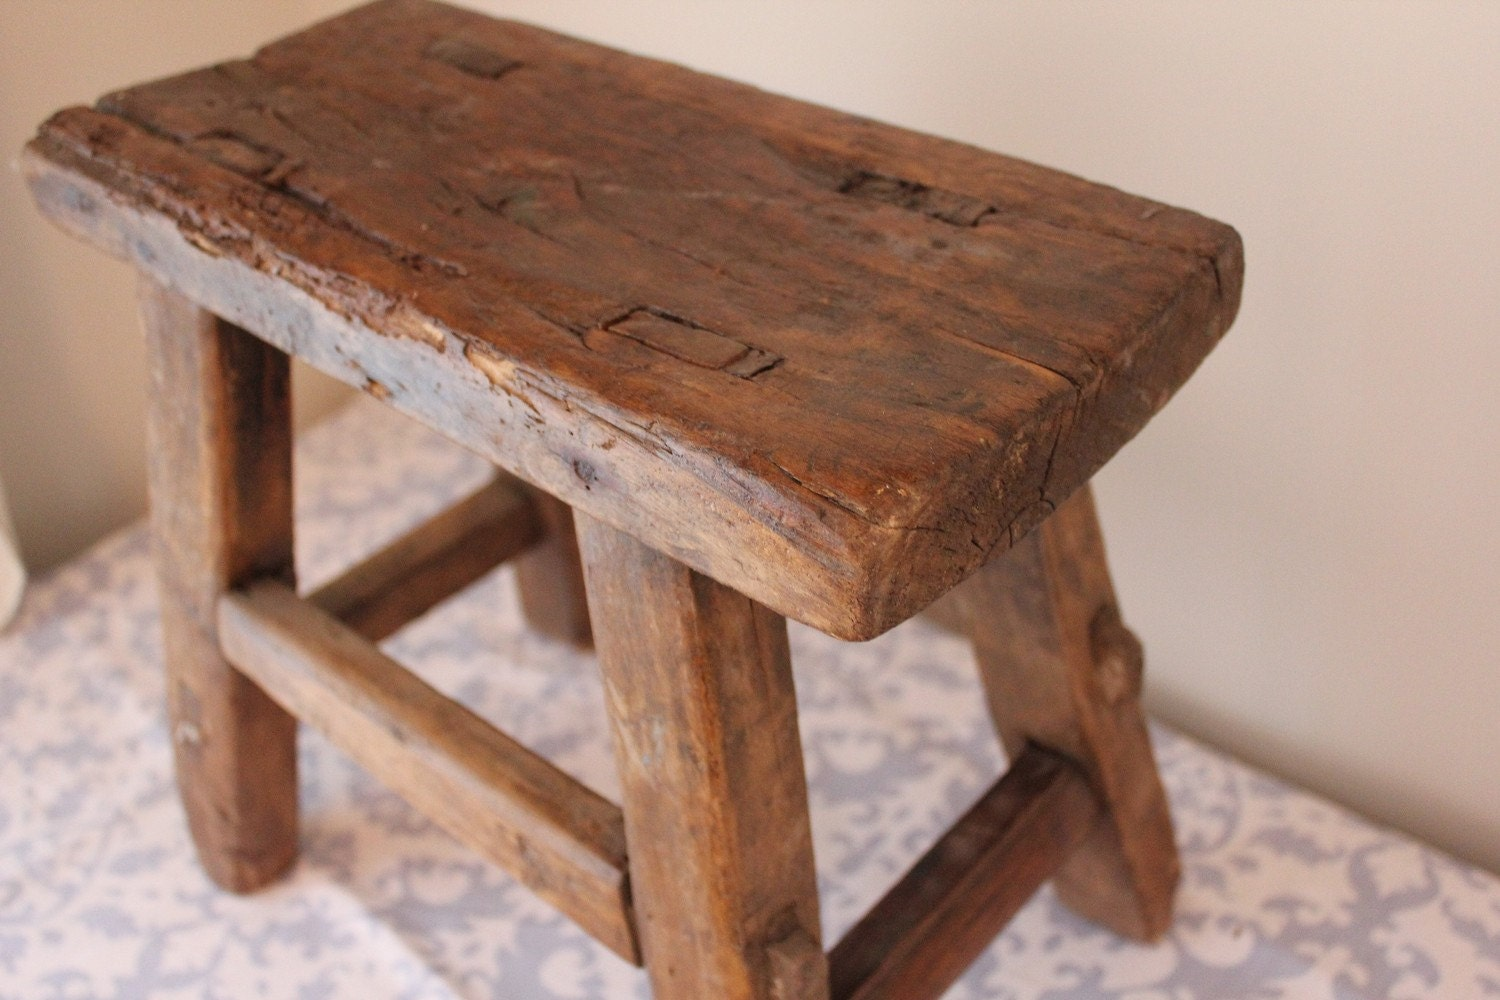 Rustic Wooden Benches ~ Small rustic reclaimed wood bench